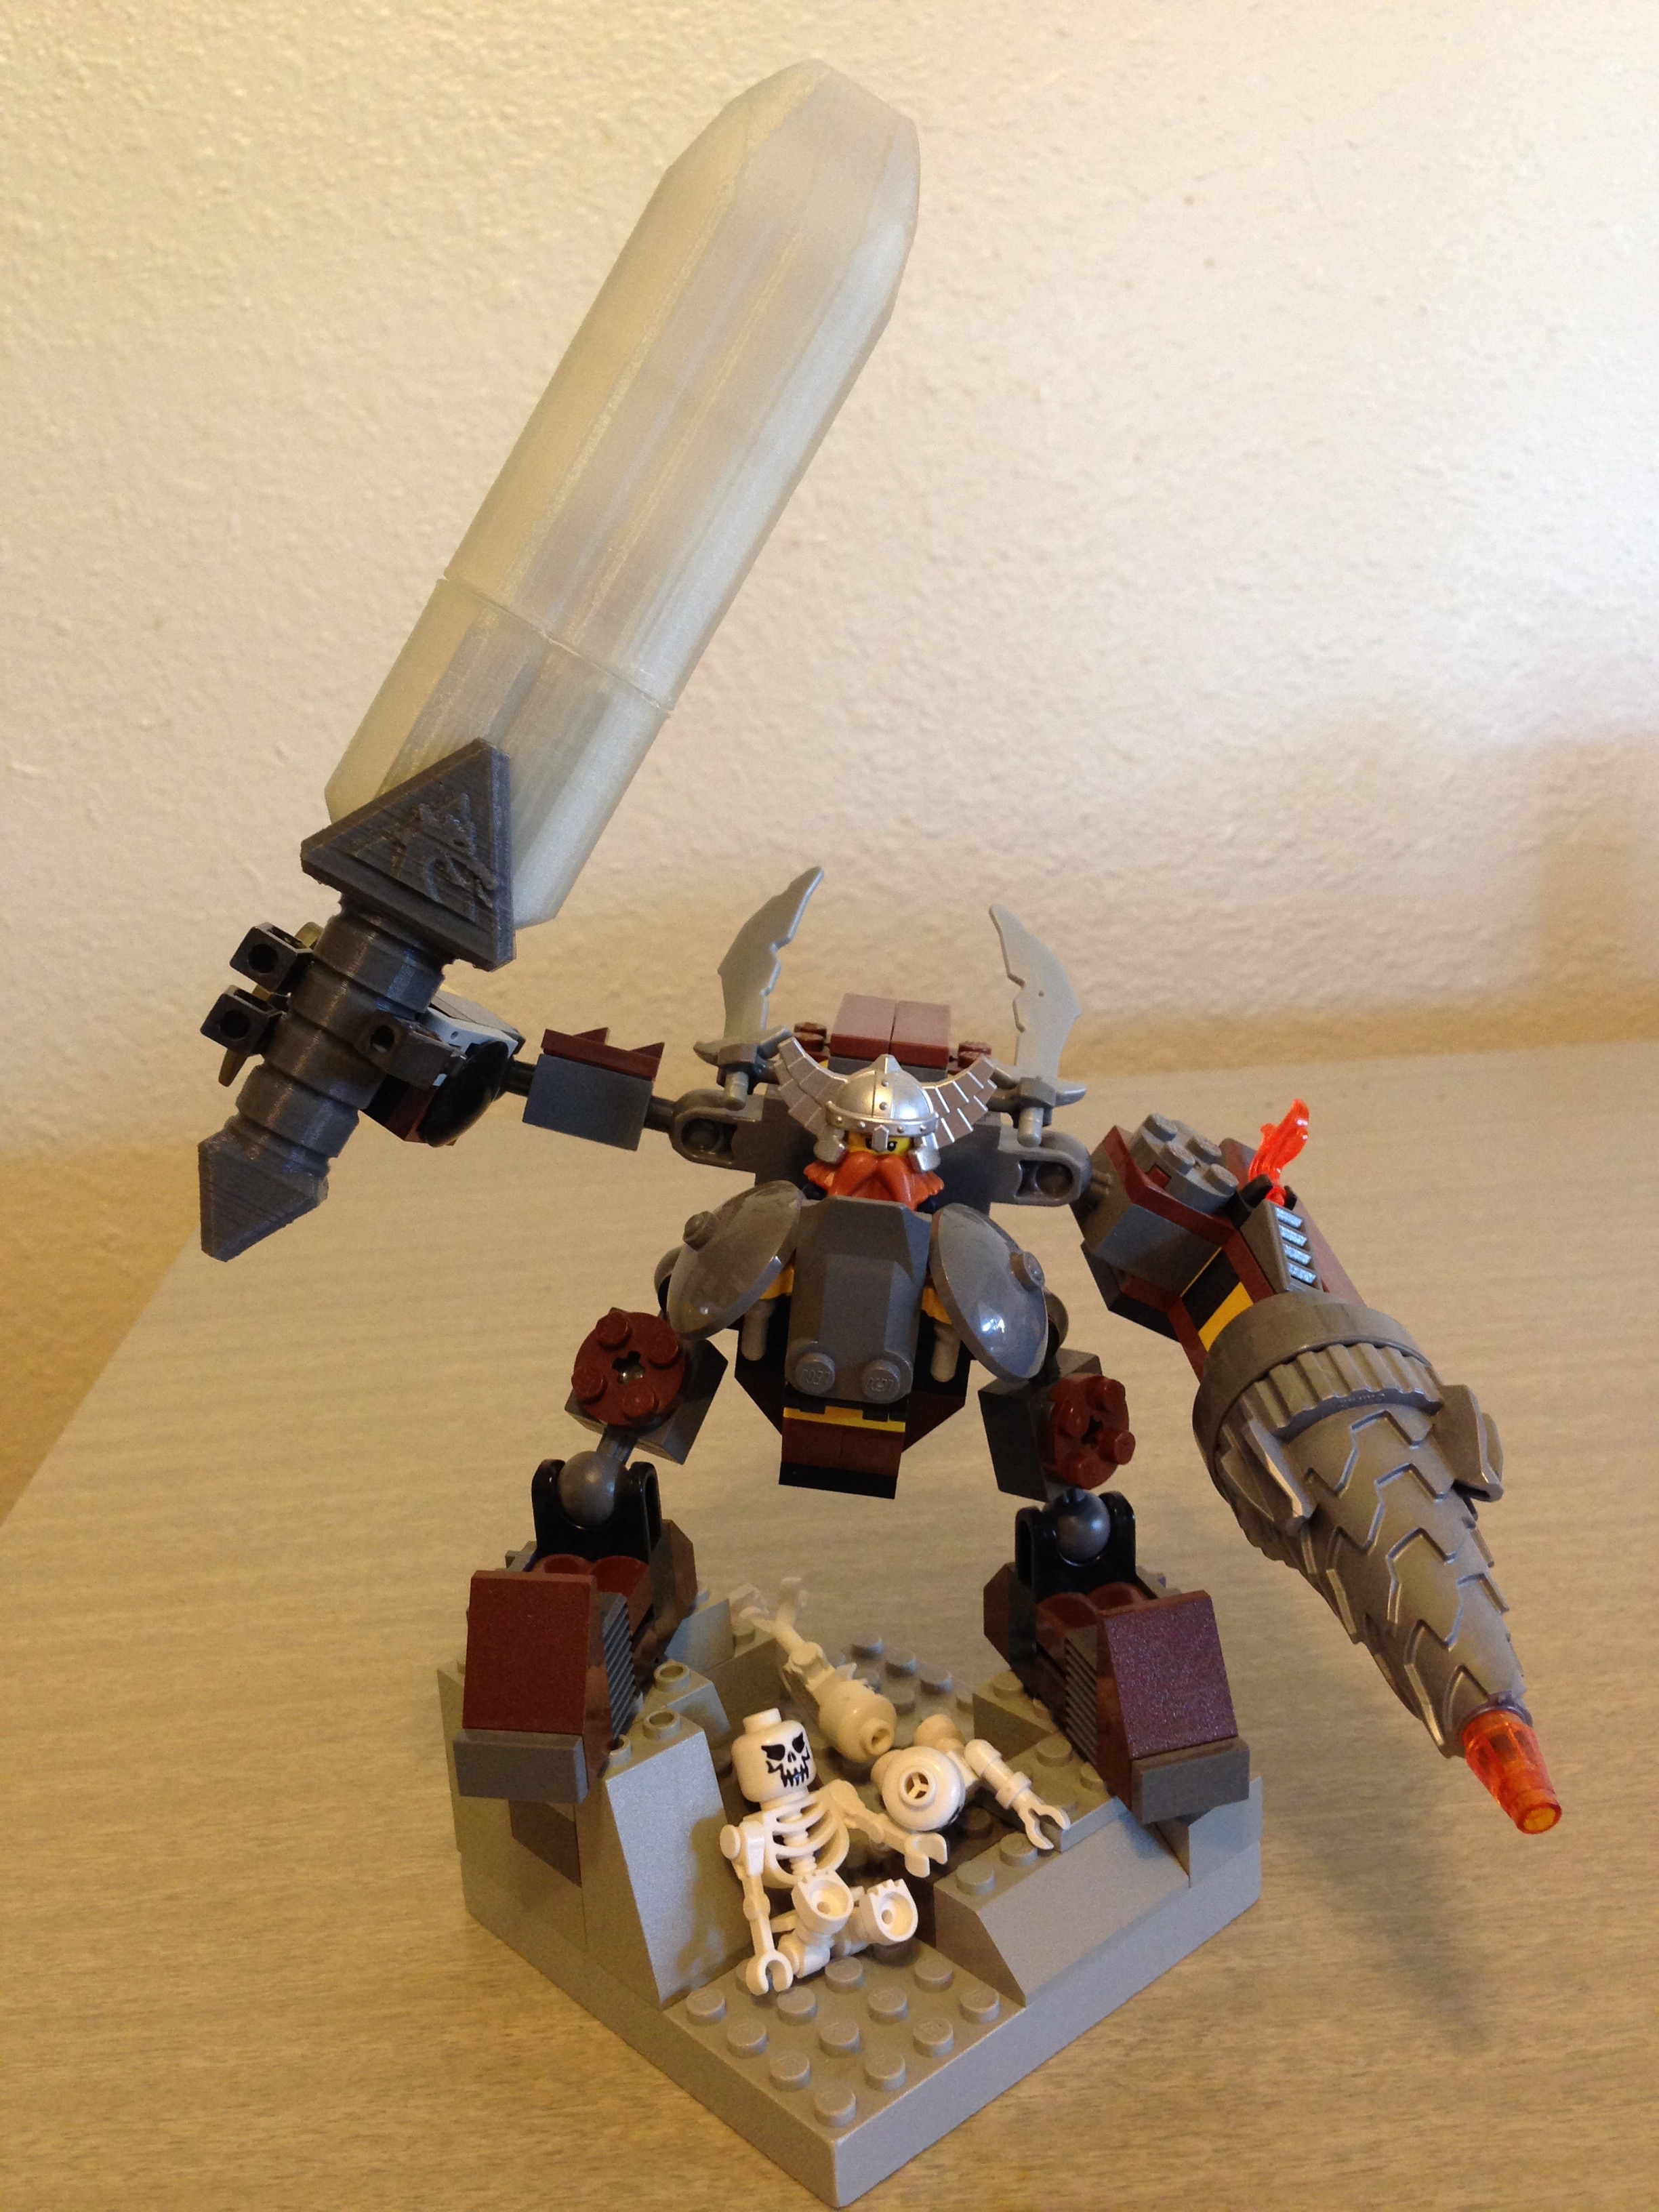 By the power of LEGO!